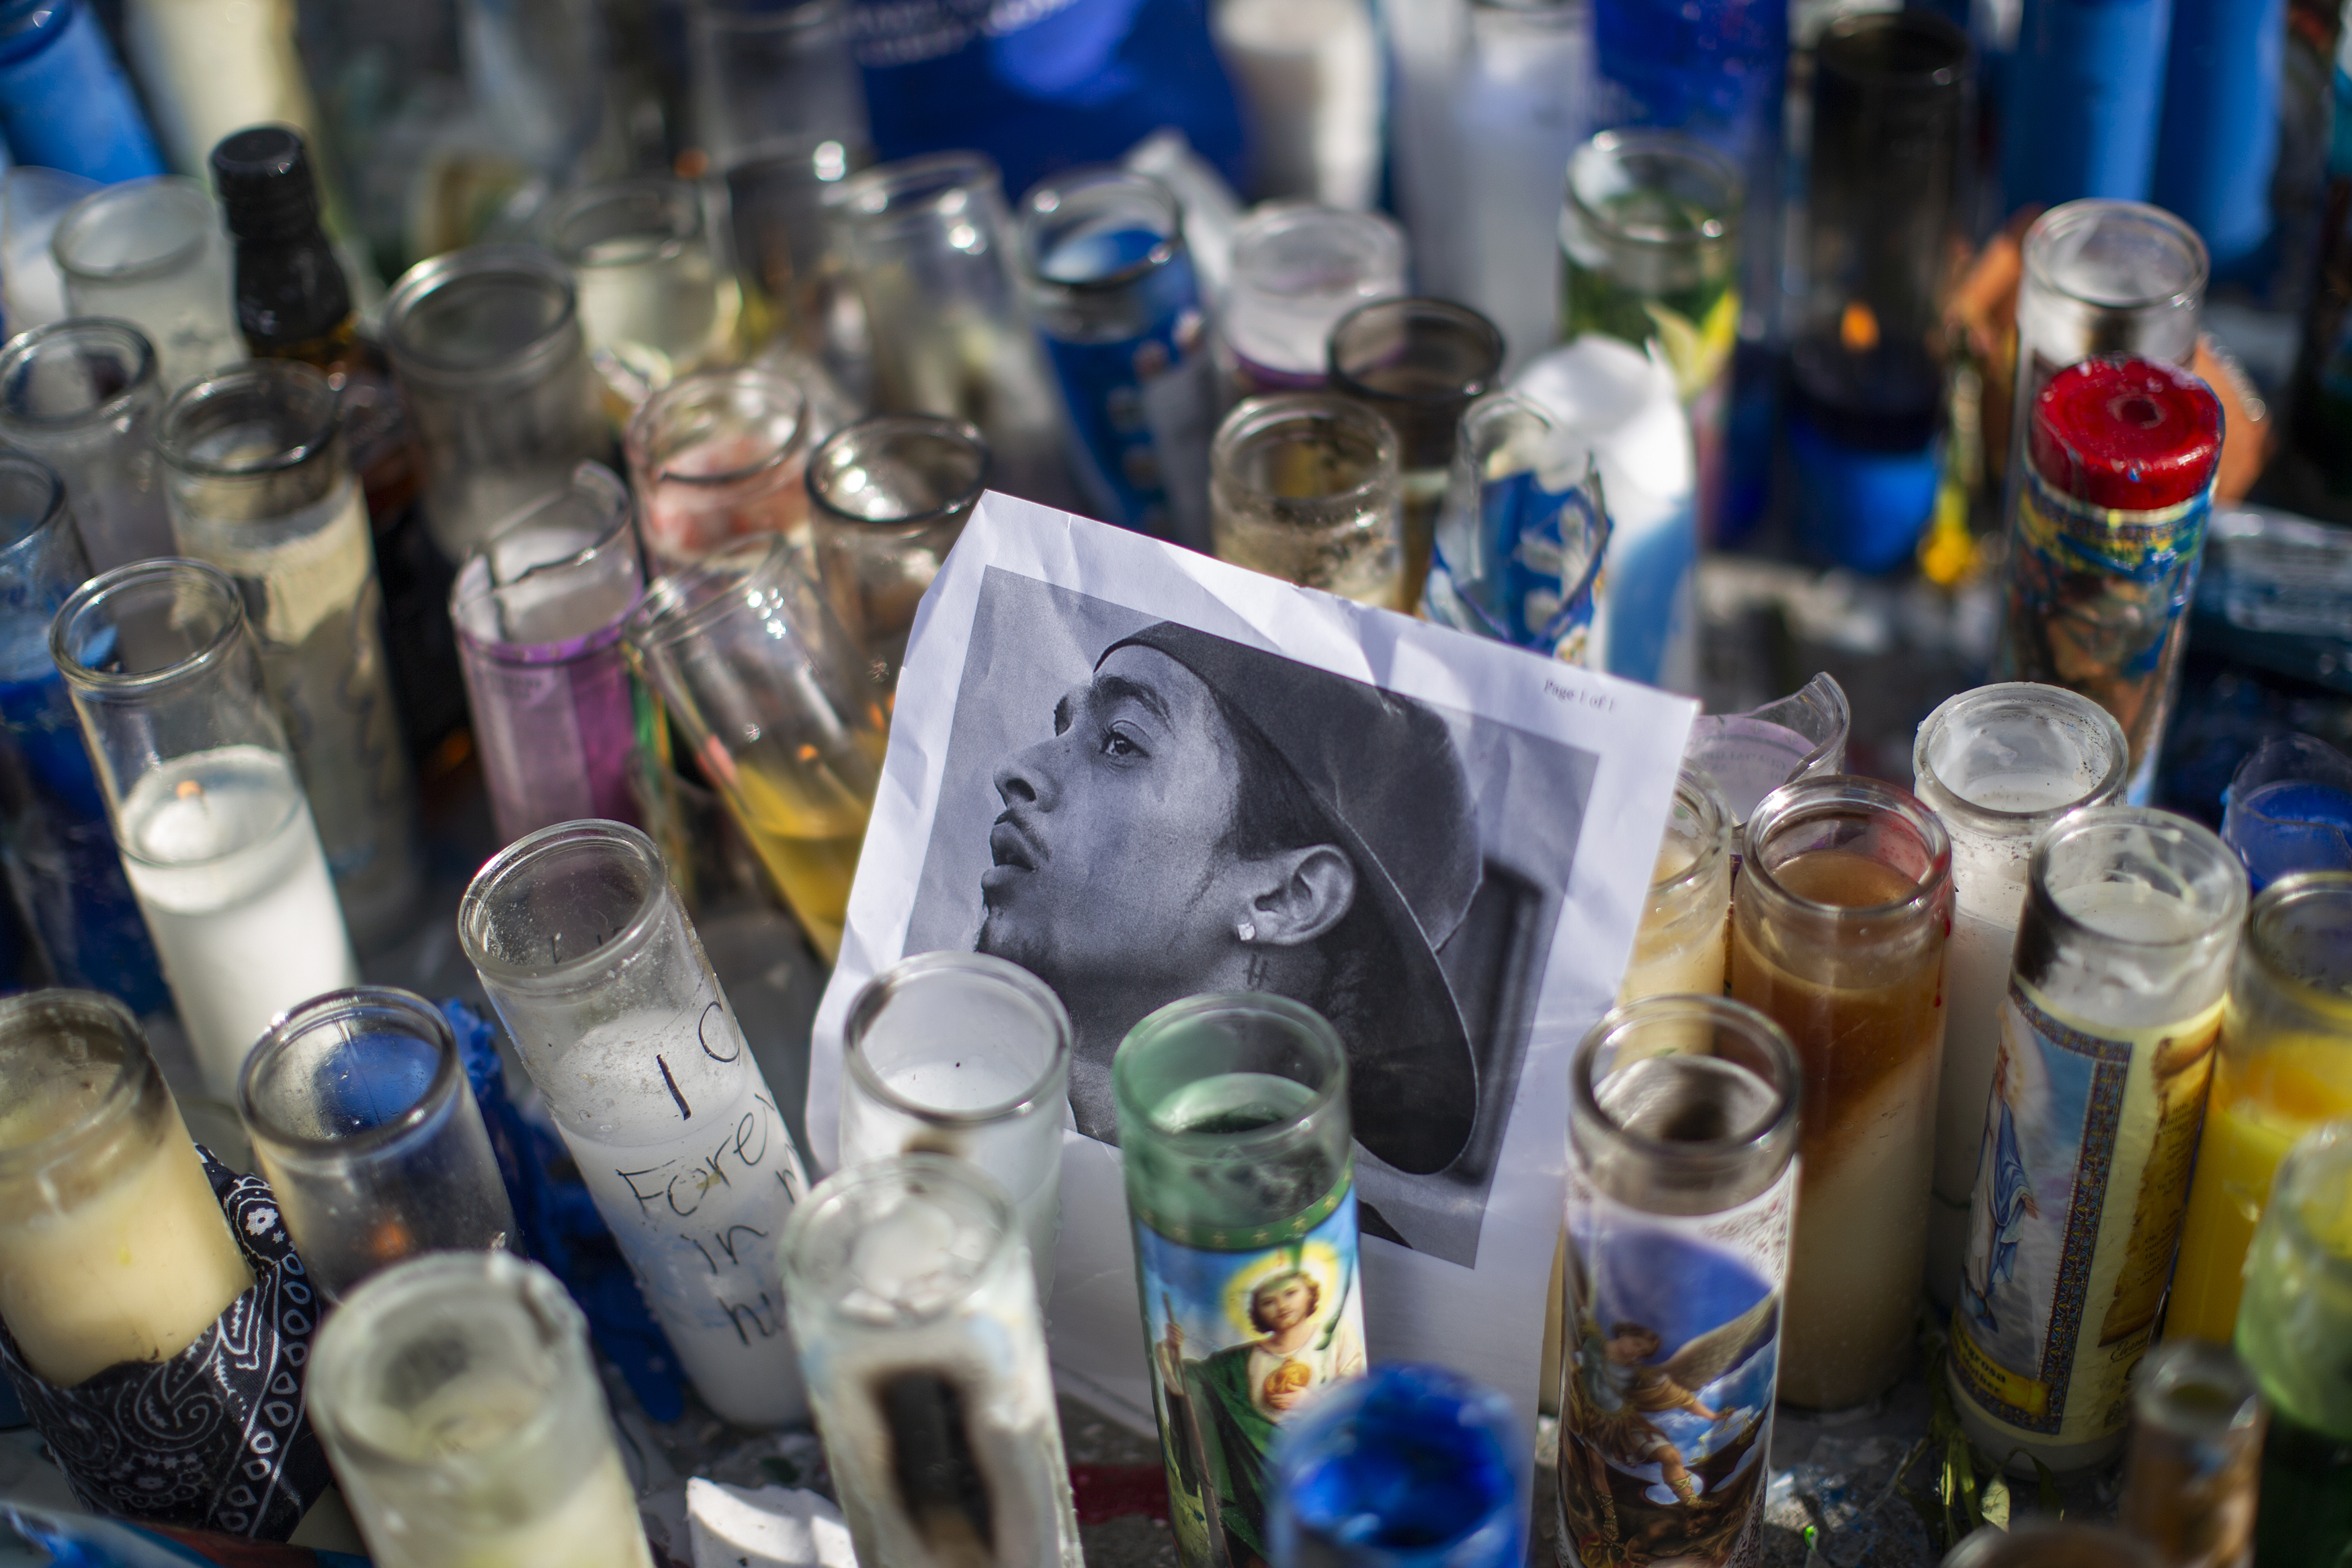 A photo of rapper Nipsey Hussle, 33, is seen among candles as people gather to mourn him on Monday in Los Angeles. (David Mcnew/Getty Images)